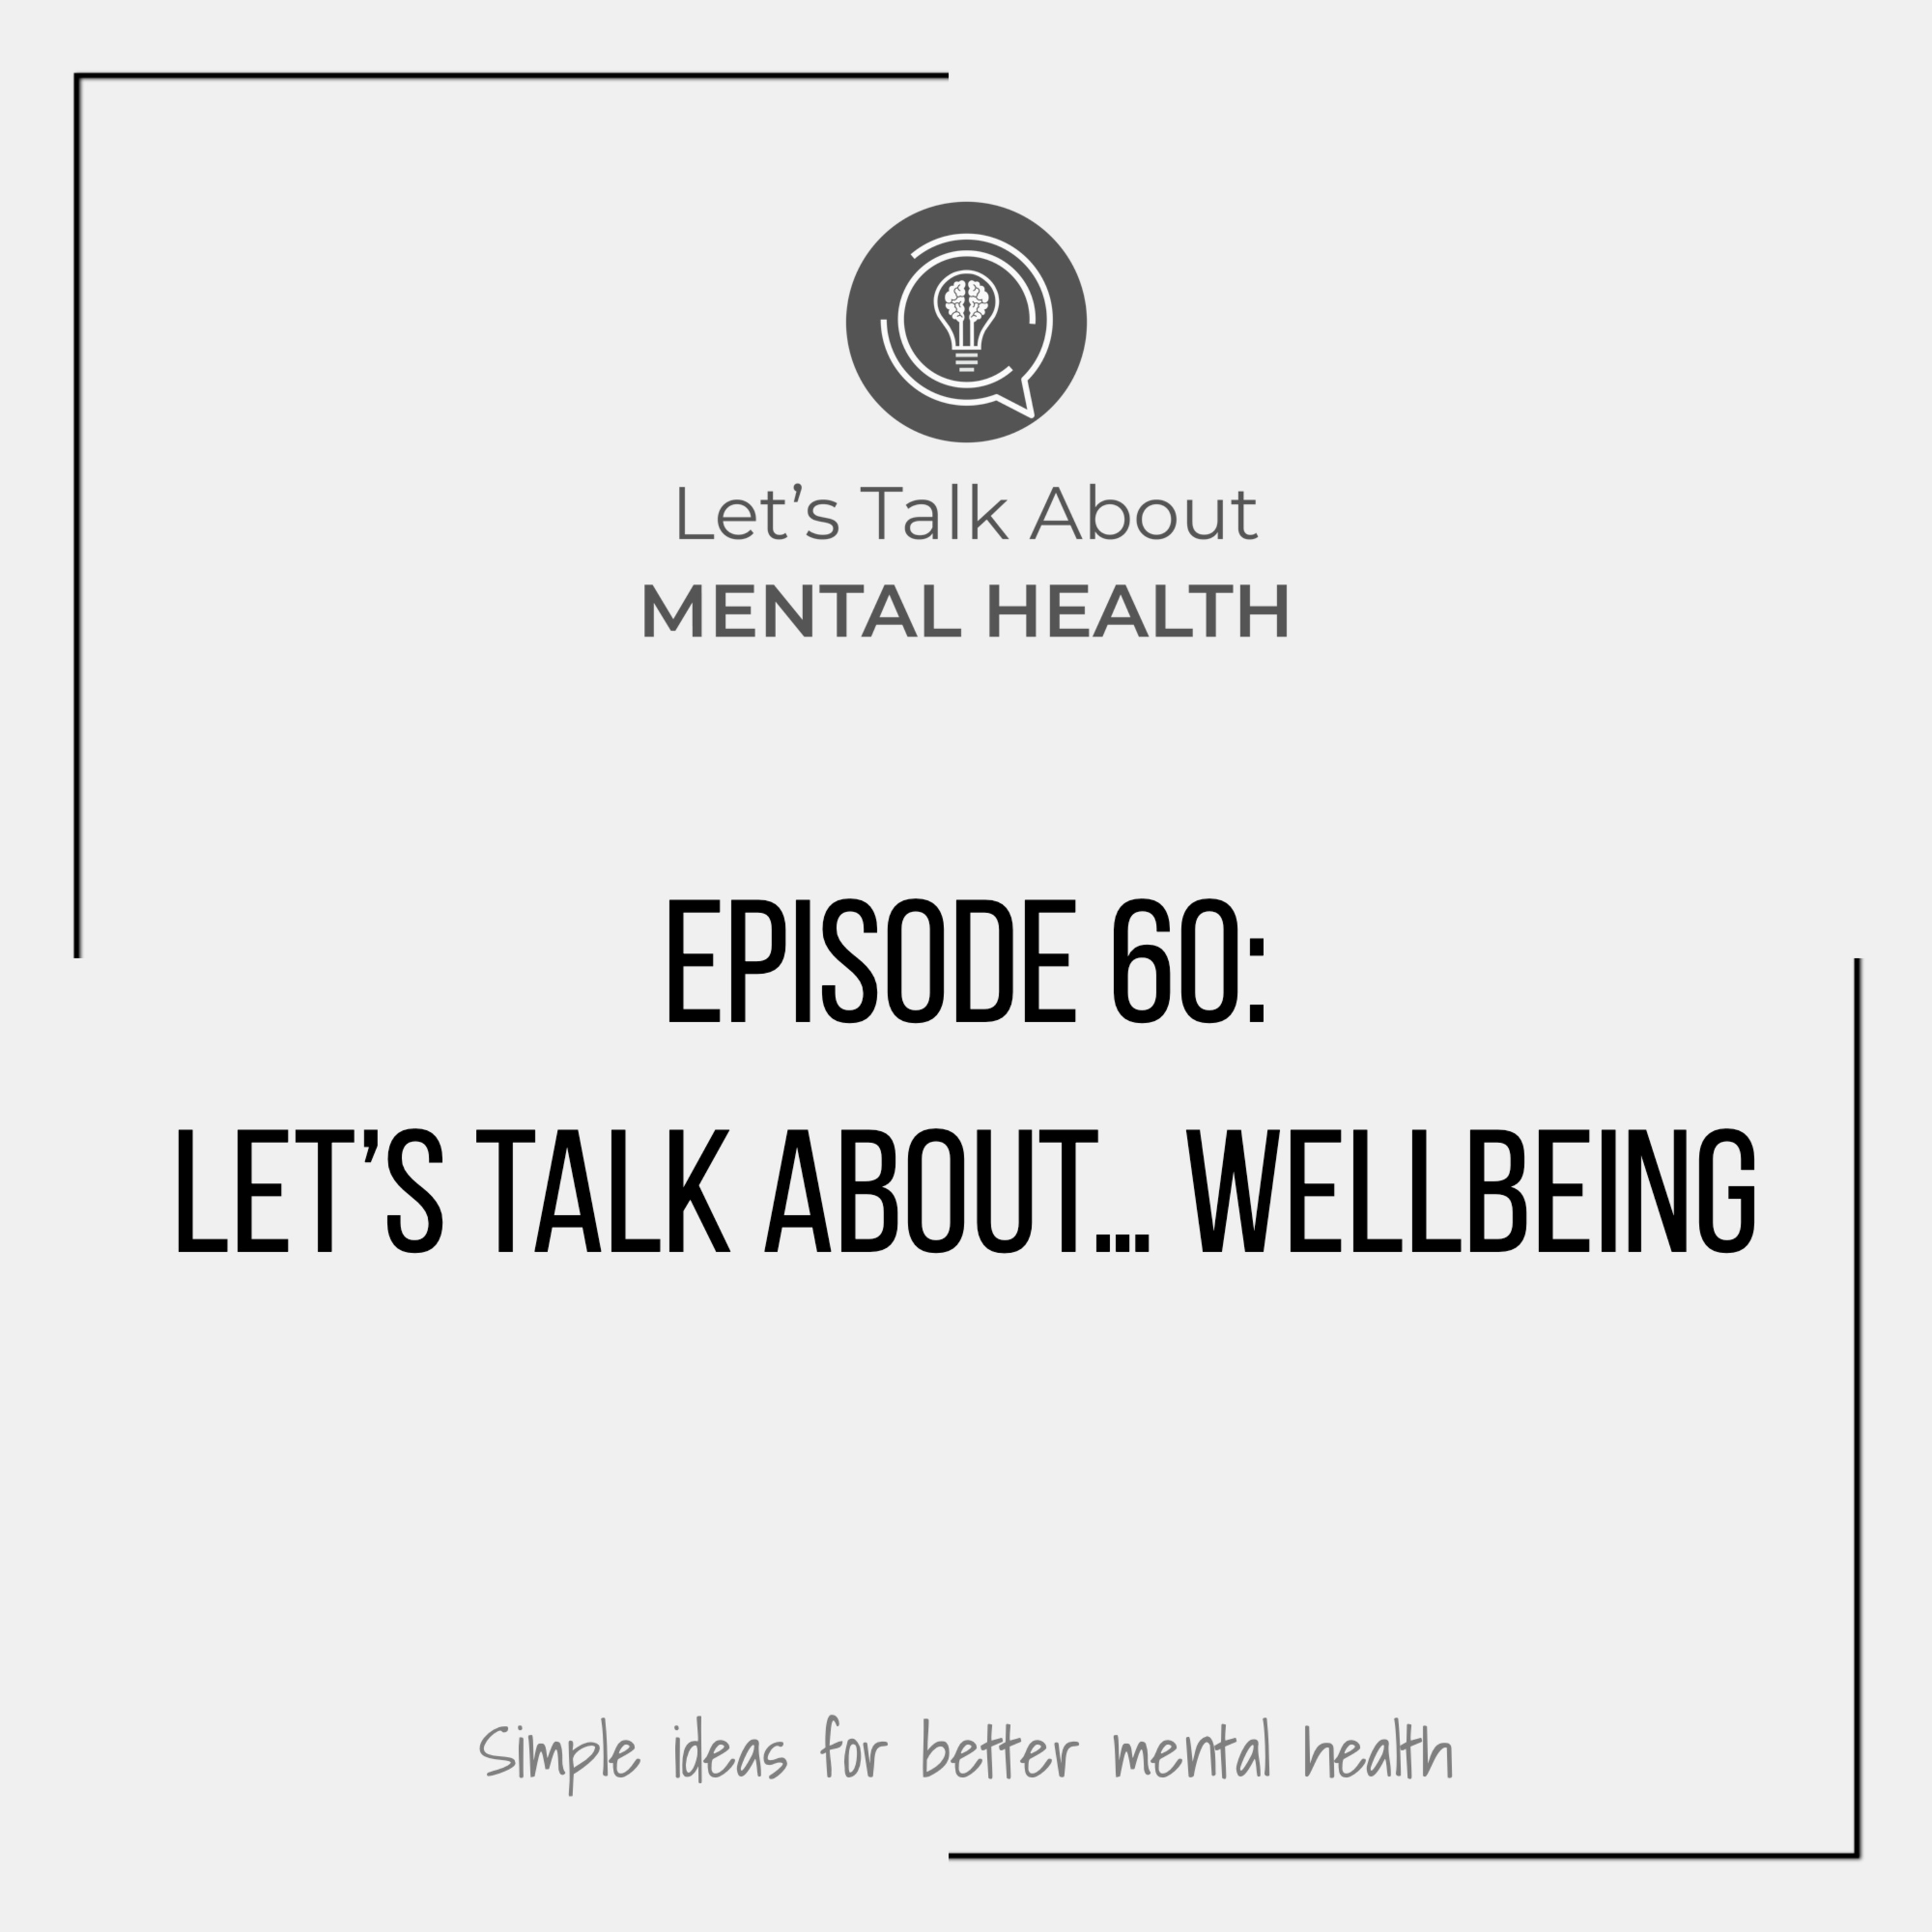 Let's Talk About Mental Health - Let's Talk About... Wellbeing